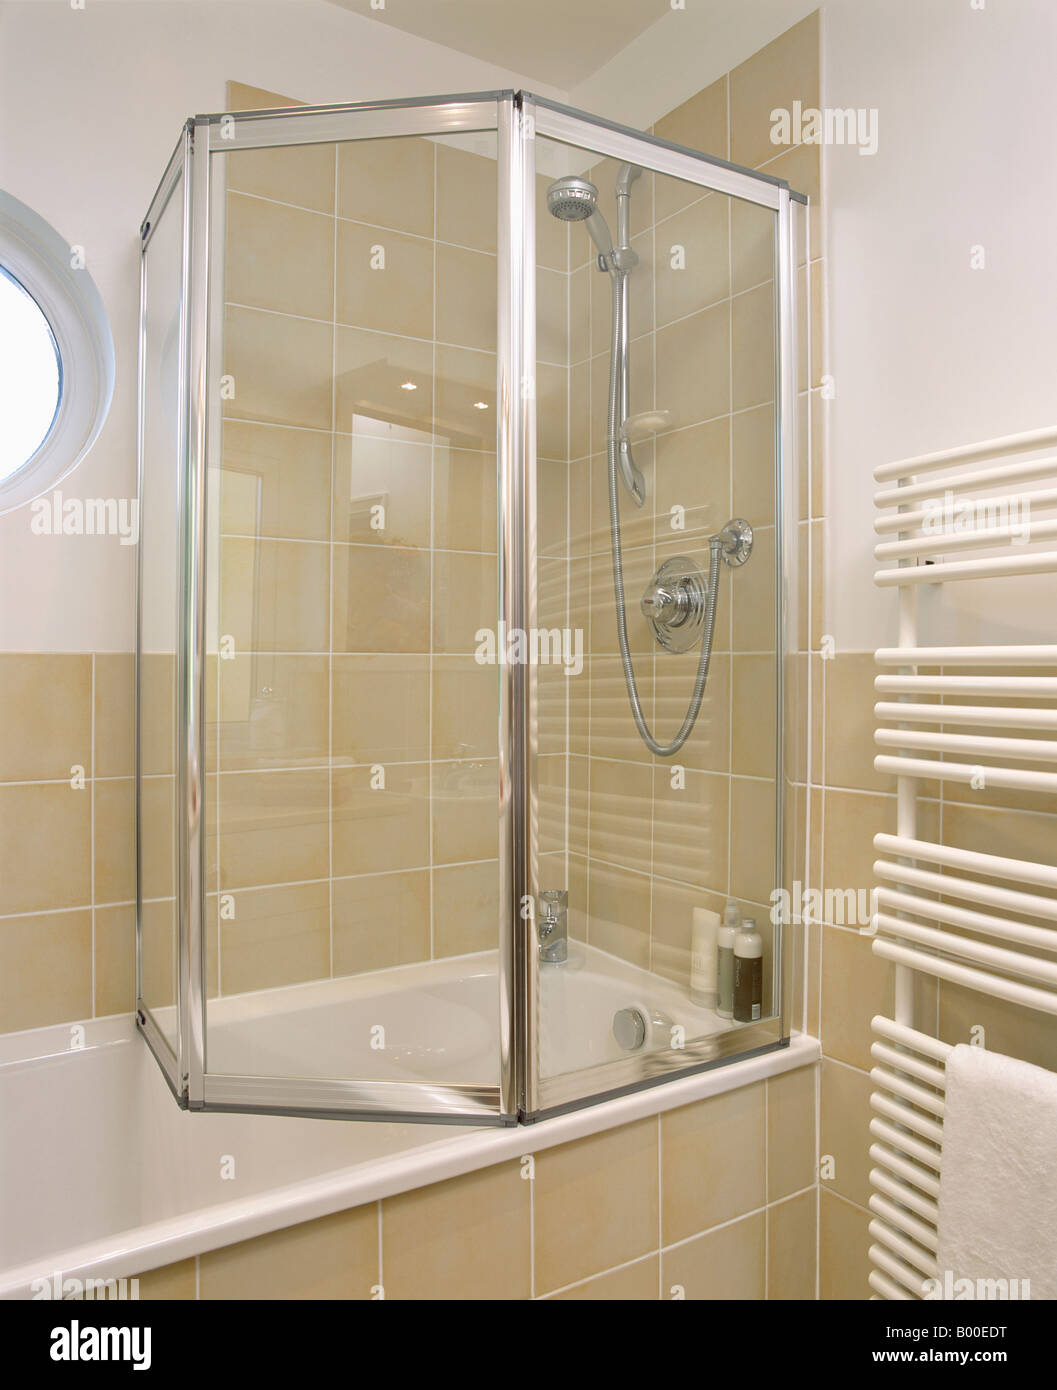 Folding Glass Shower Doors On Bath In Modern Bathroom With Neutral Wall  Tiles